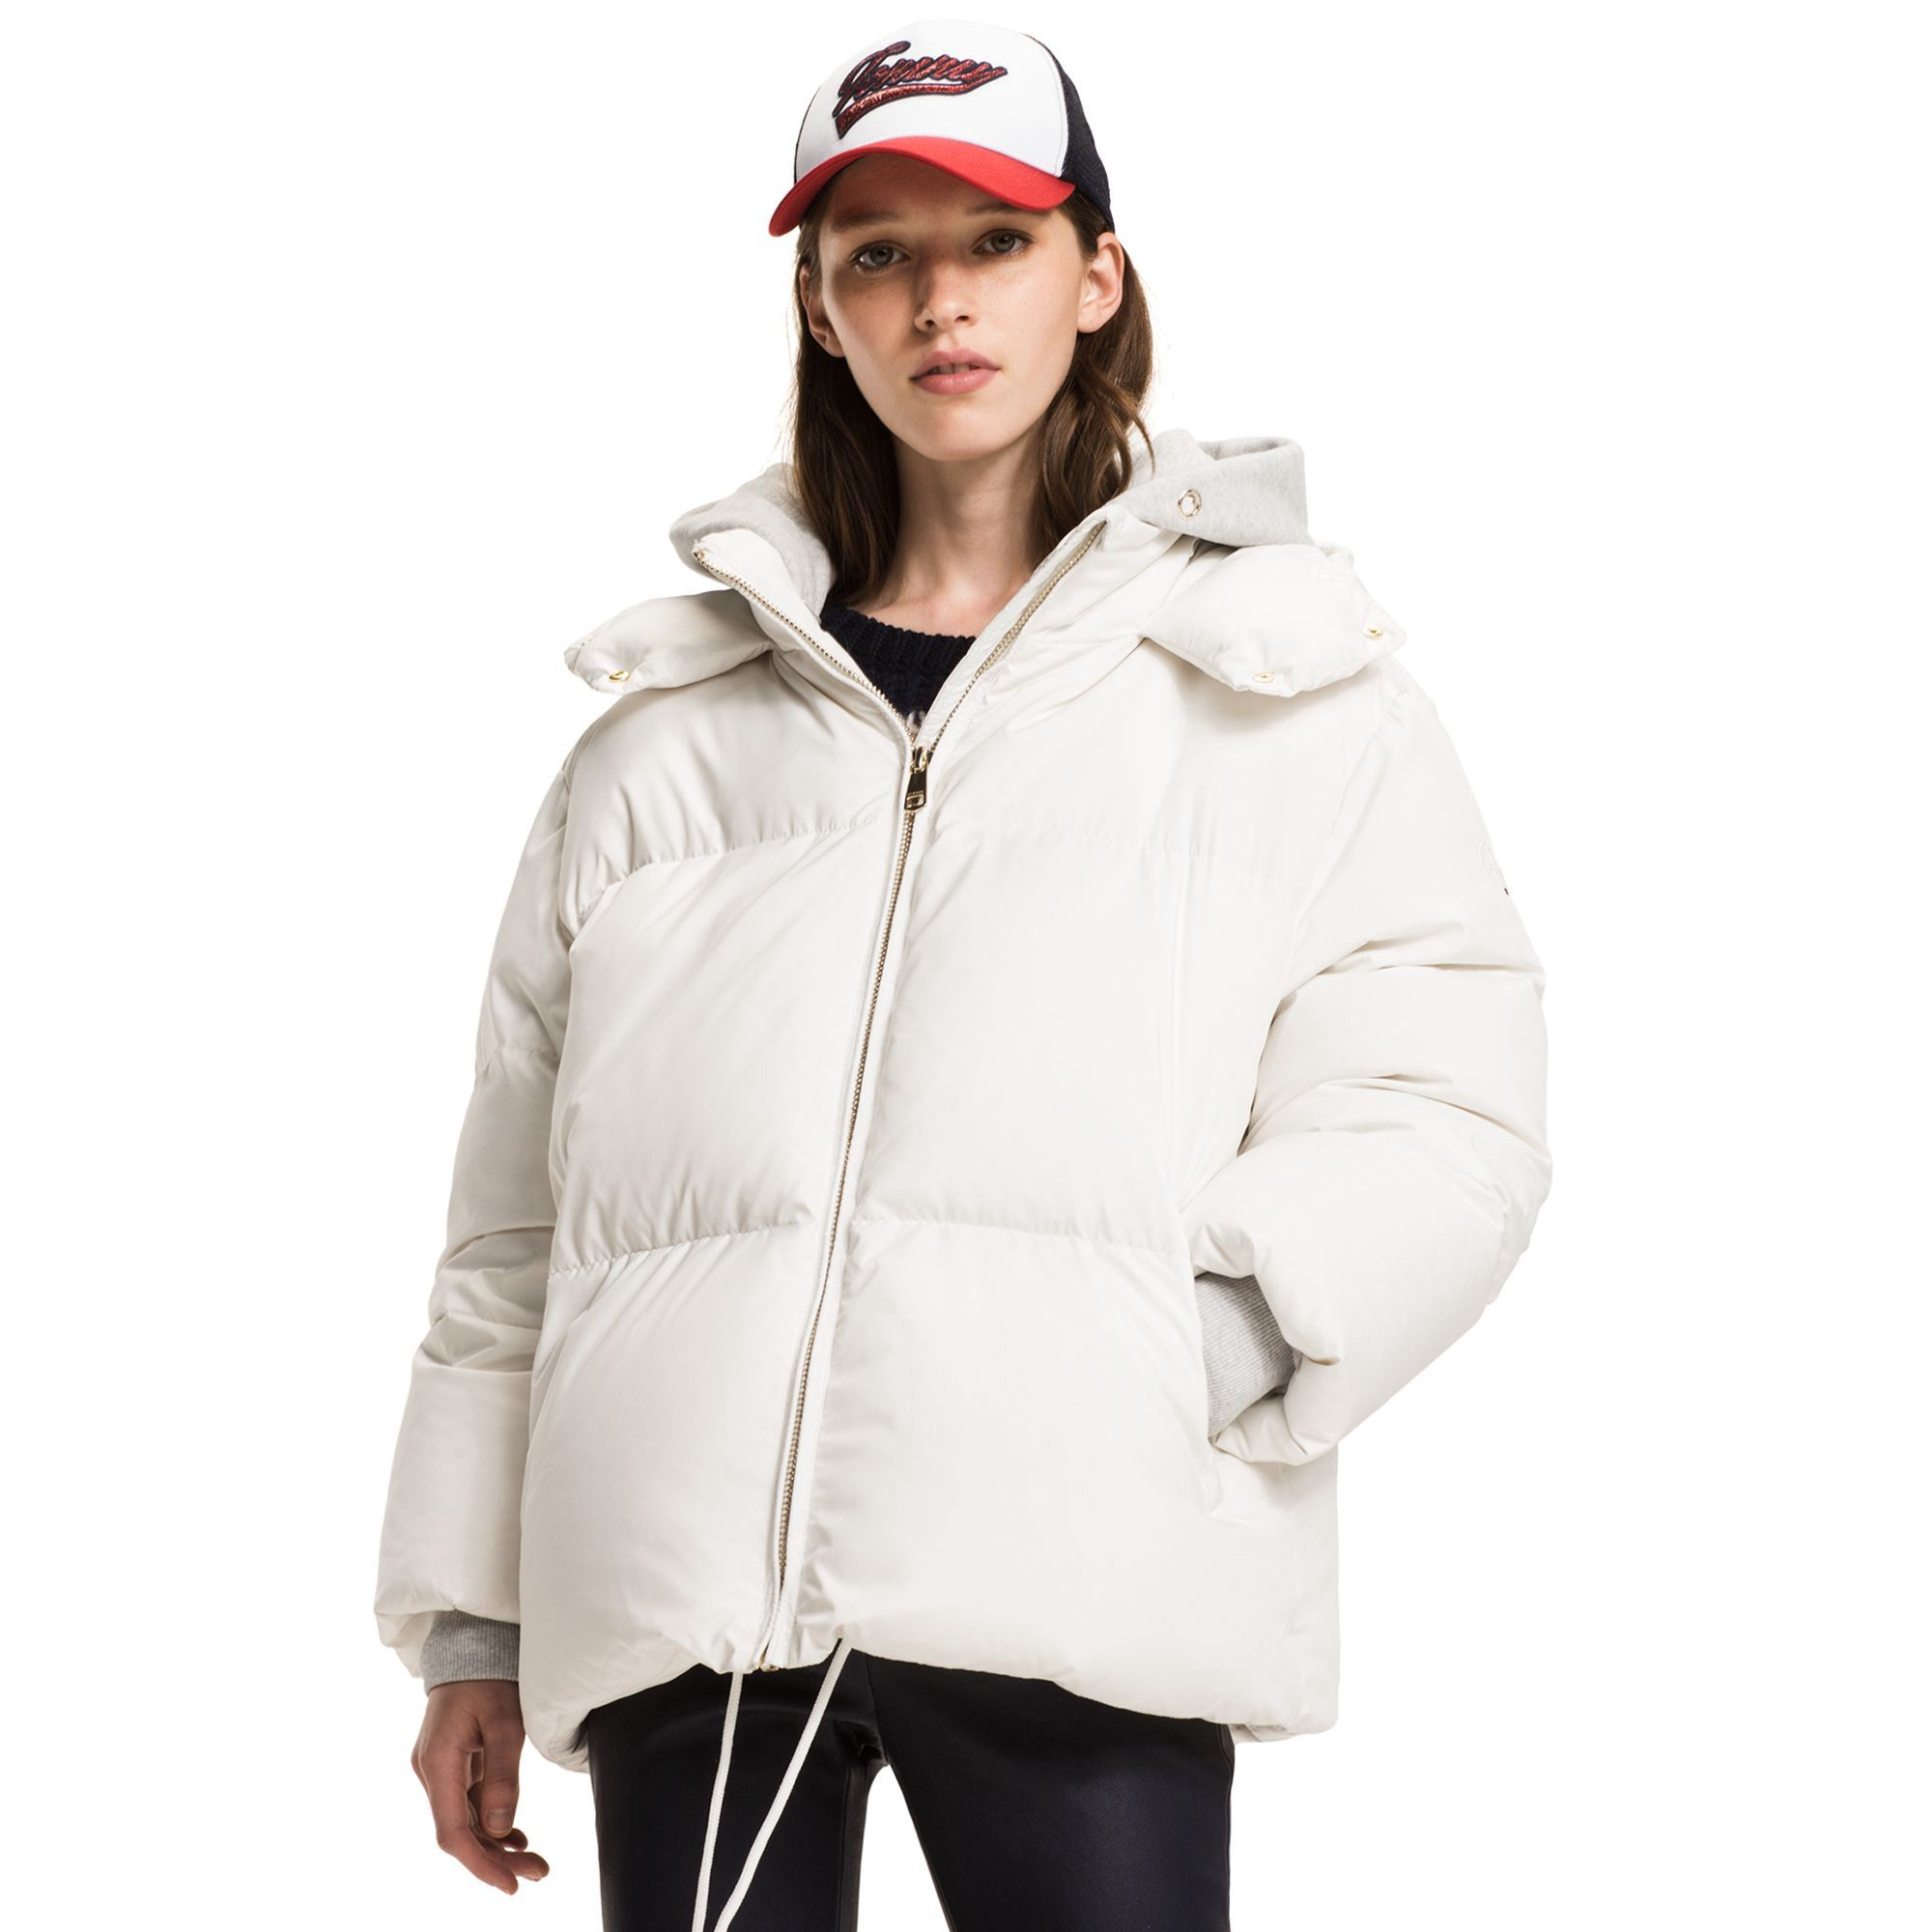 Tommy Hilfiger Detachable Hood Puffer Coat Snow White Tommyhilfiger Cloth Tommy Hilfiger Womenswear Fashion Tommy Hilfiger Outfit [ 2000 x 2000 Pixel ]